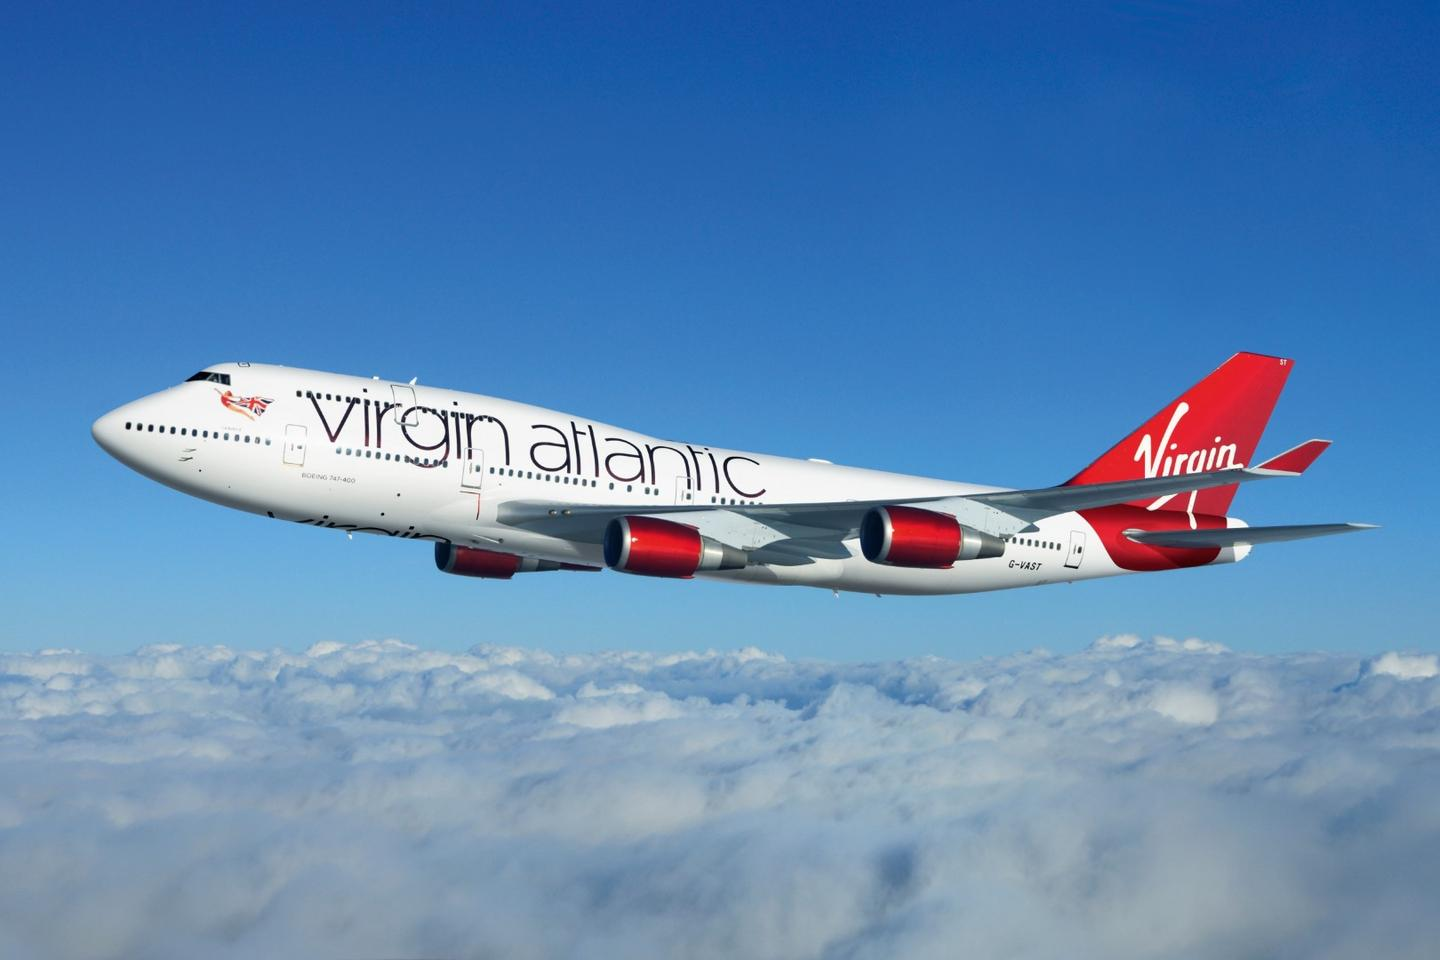 The fuel was used in a 747 flying from Floridato London